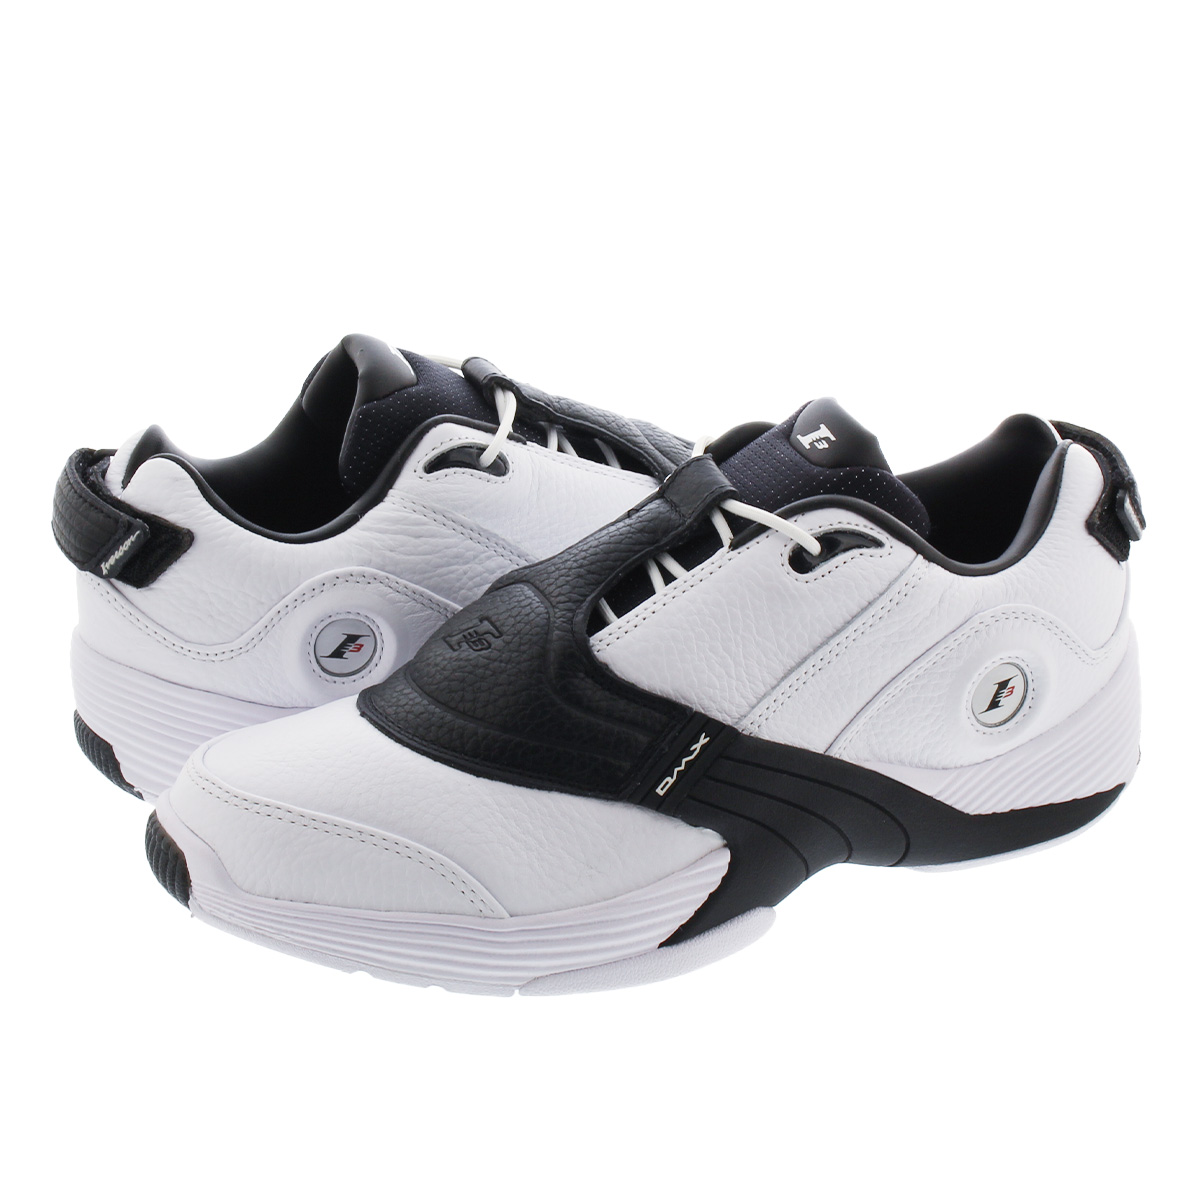 Reebok ANSWER V LOW リーボック アンサー 5 ロー WHITE/BLACK/MATTE SILVER ef7601